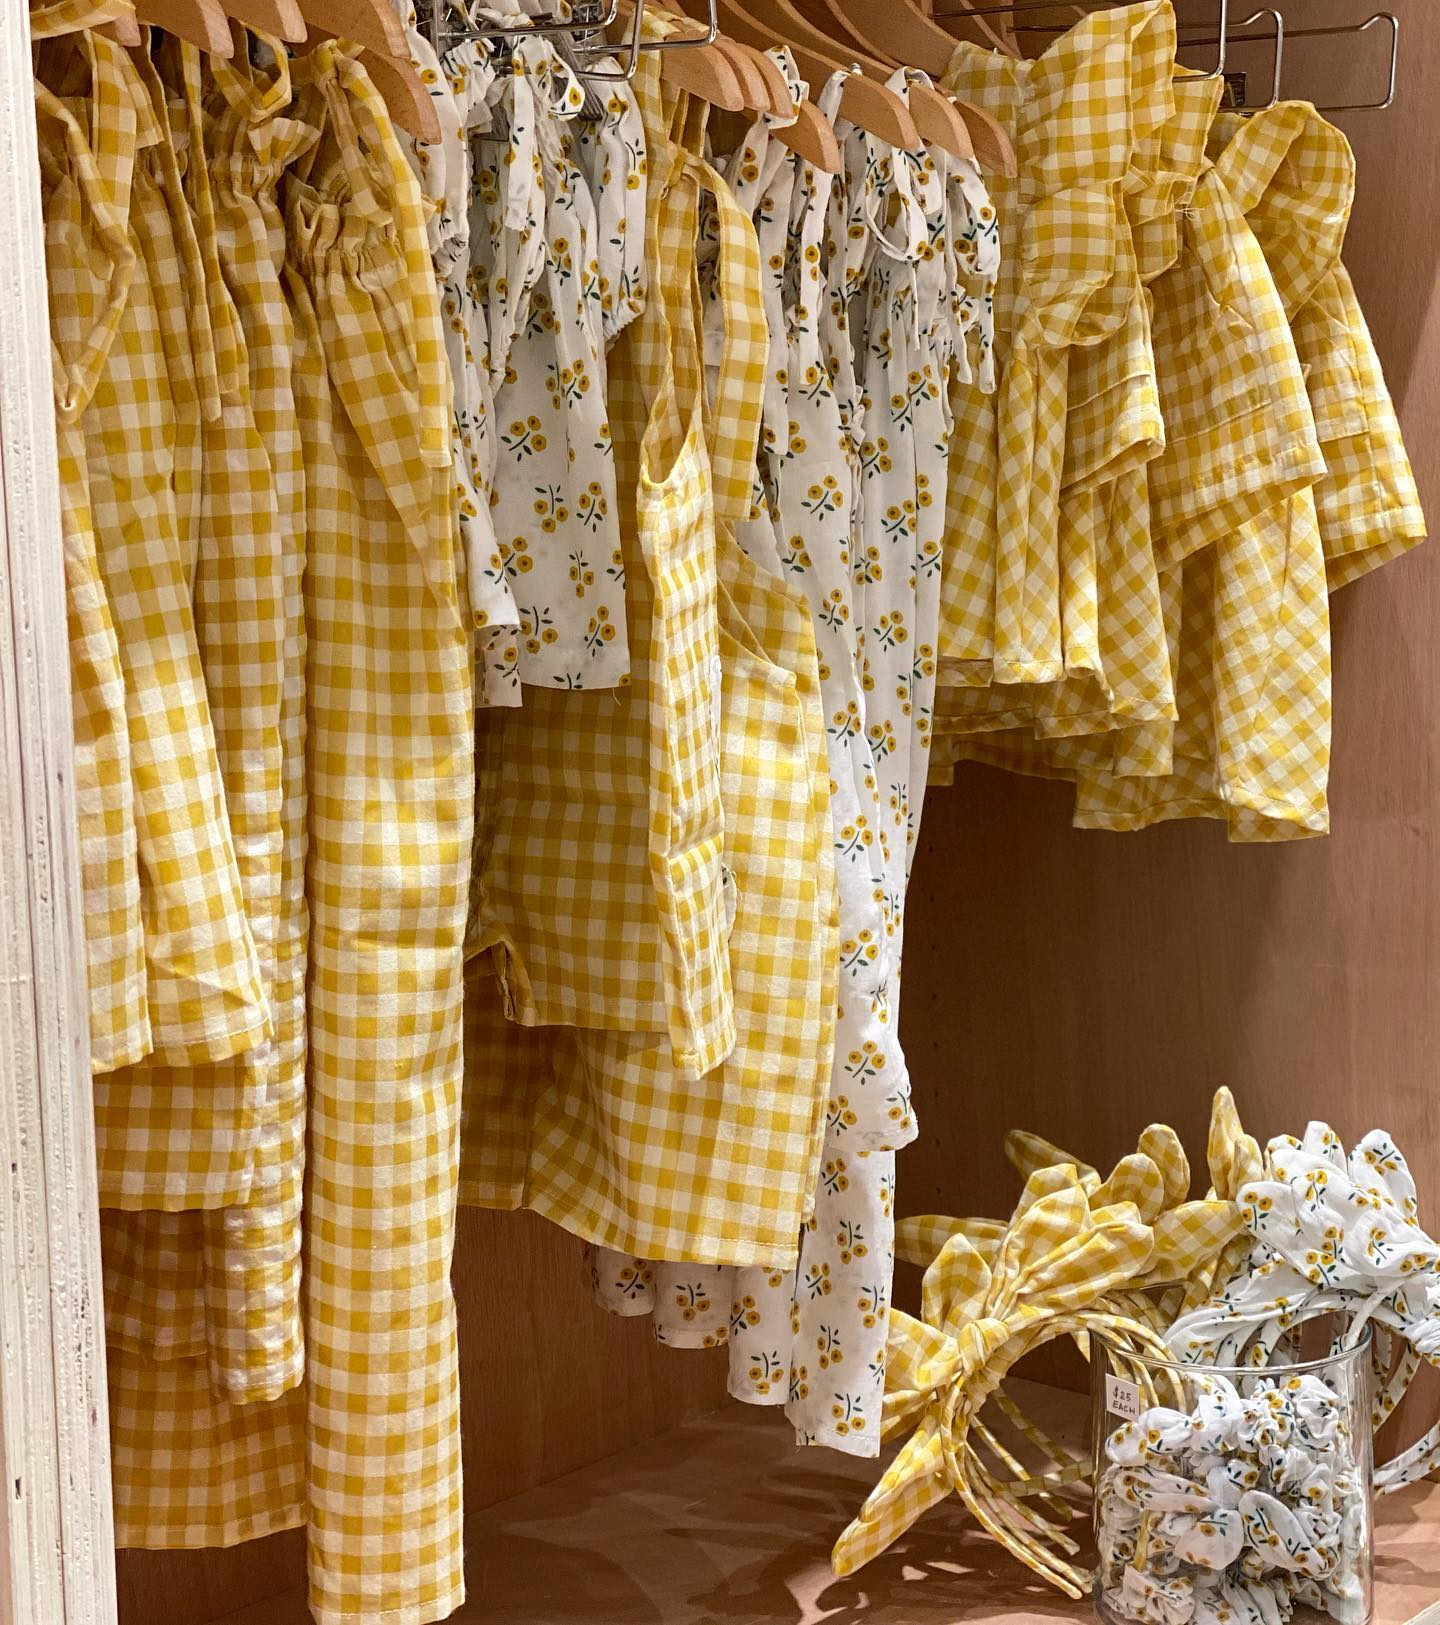 Satya Dress: 1-2Y, 2-3Y, 3-4Y, 4-6Y, 6-8Y, french flowers or mustard check